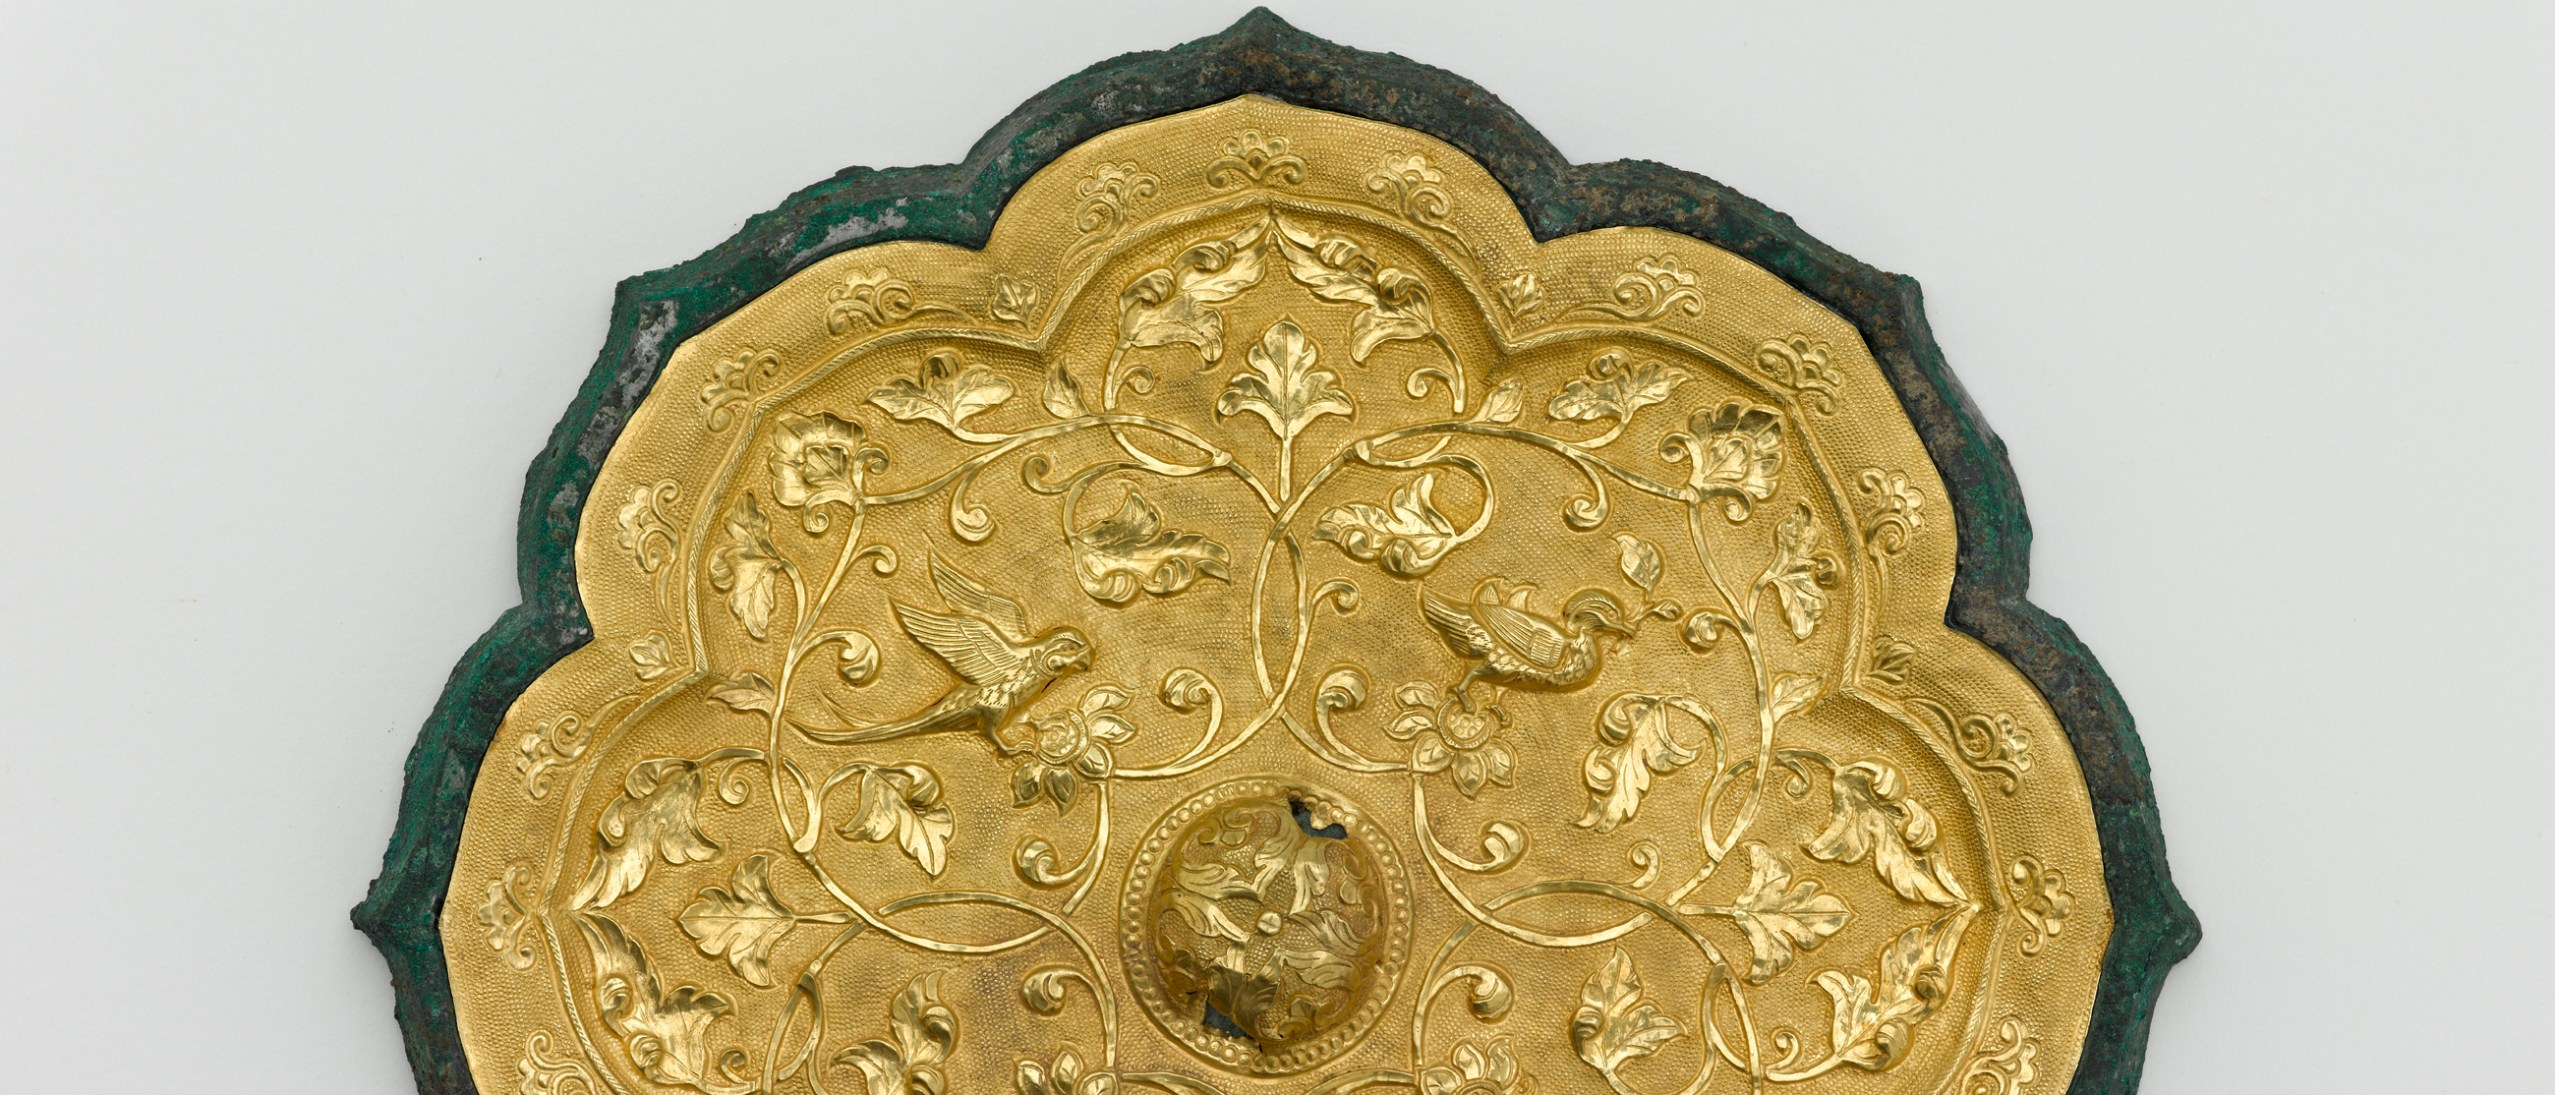 Detail image, Foliated mirror with birds and floral scrolls; Mirror; Early or mid-Tang dynasty, late 7th-early 8th century; Cast bronze and applied gold plaque with repoussé, chased, and ring-punched decoration; China; Purchase — Charles Lang Freer Endowment; Freer Gallery of Art; F1930.45